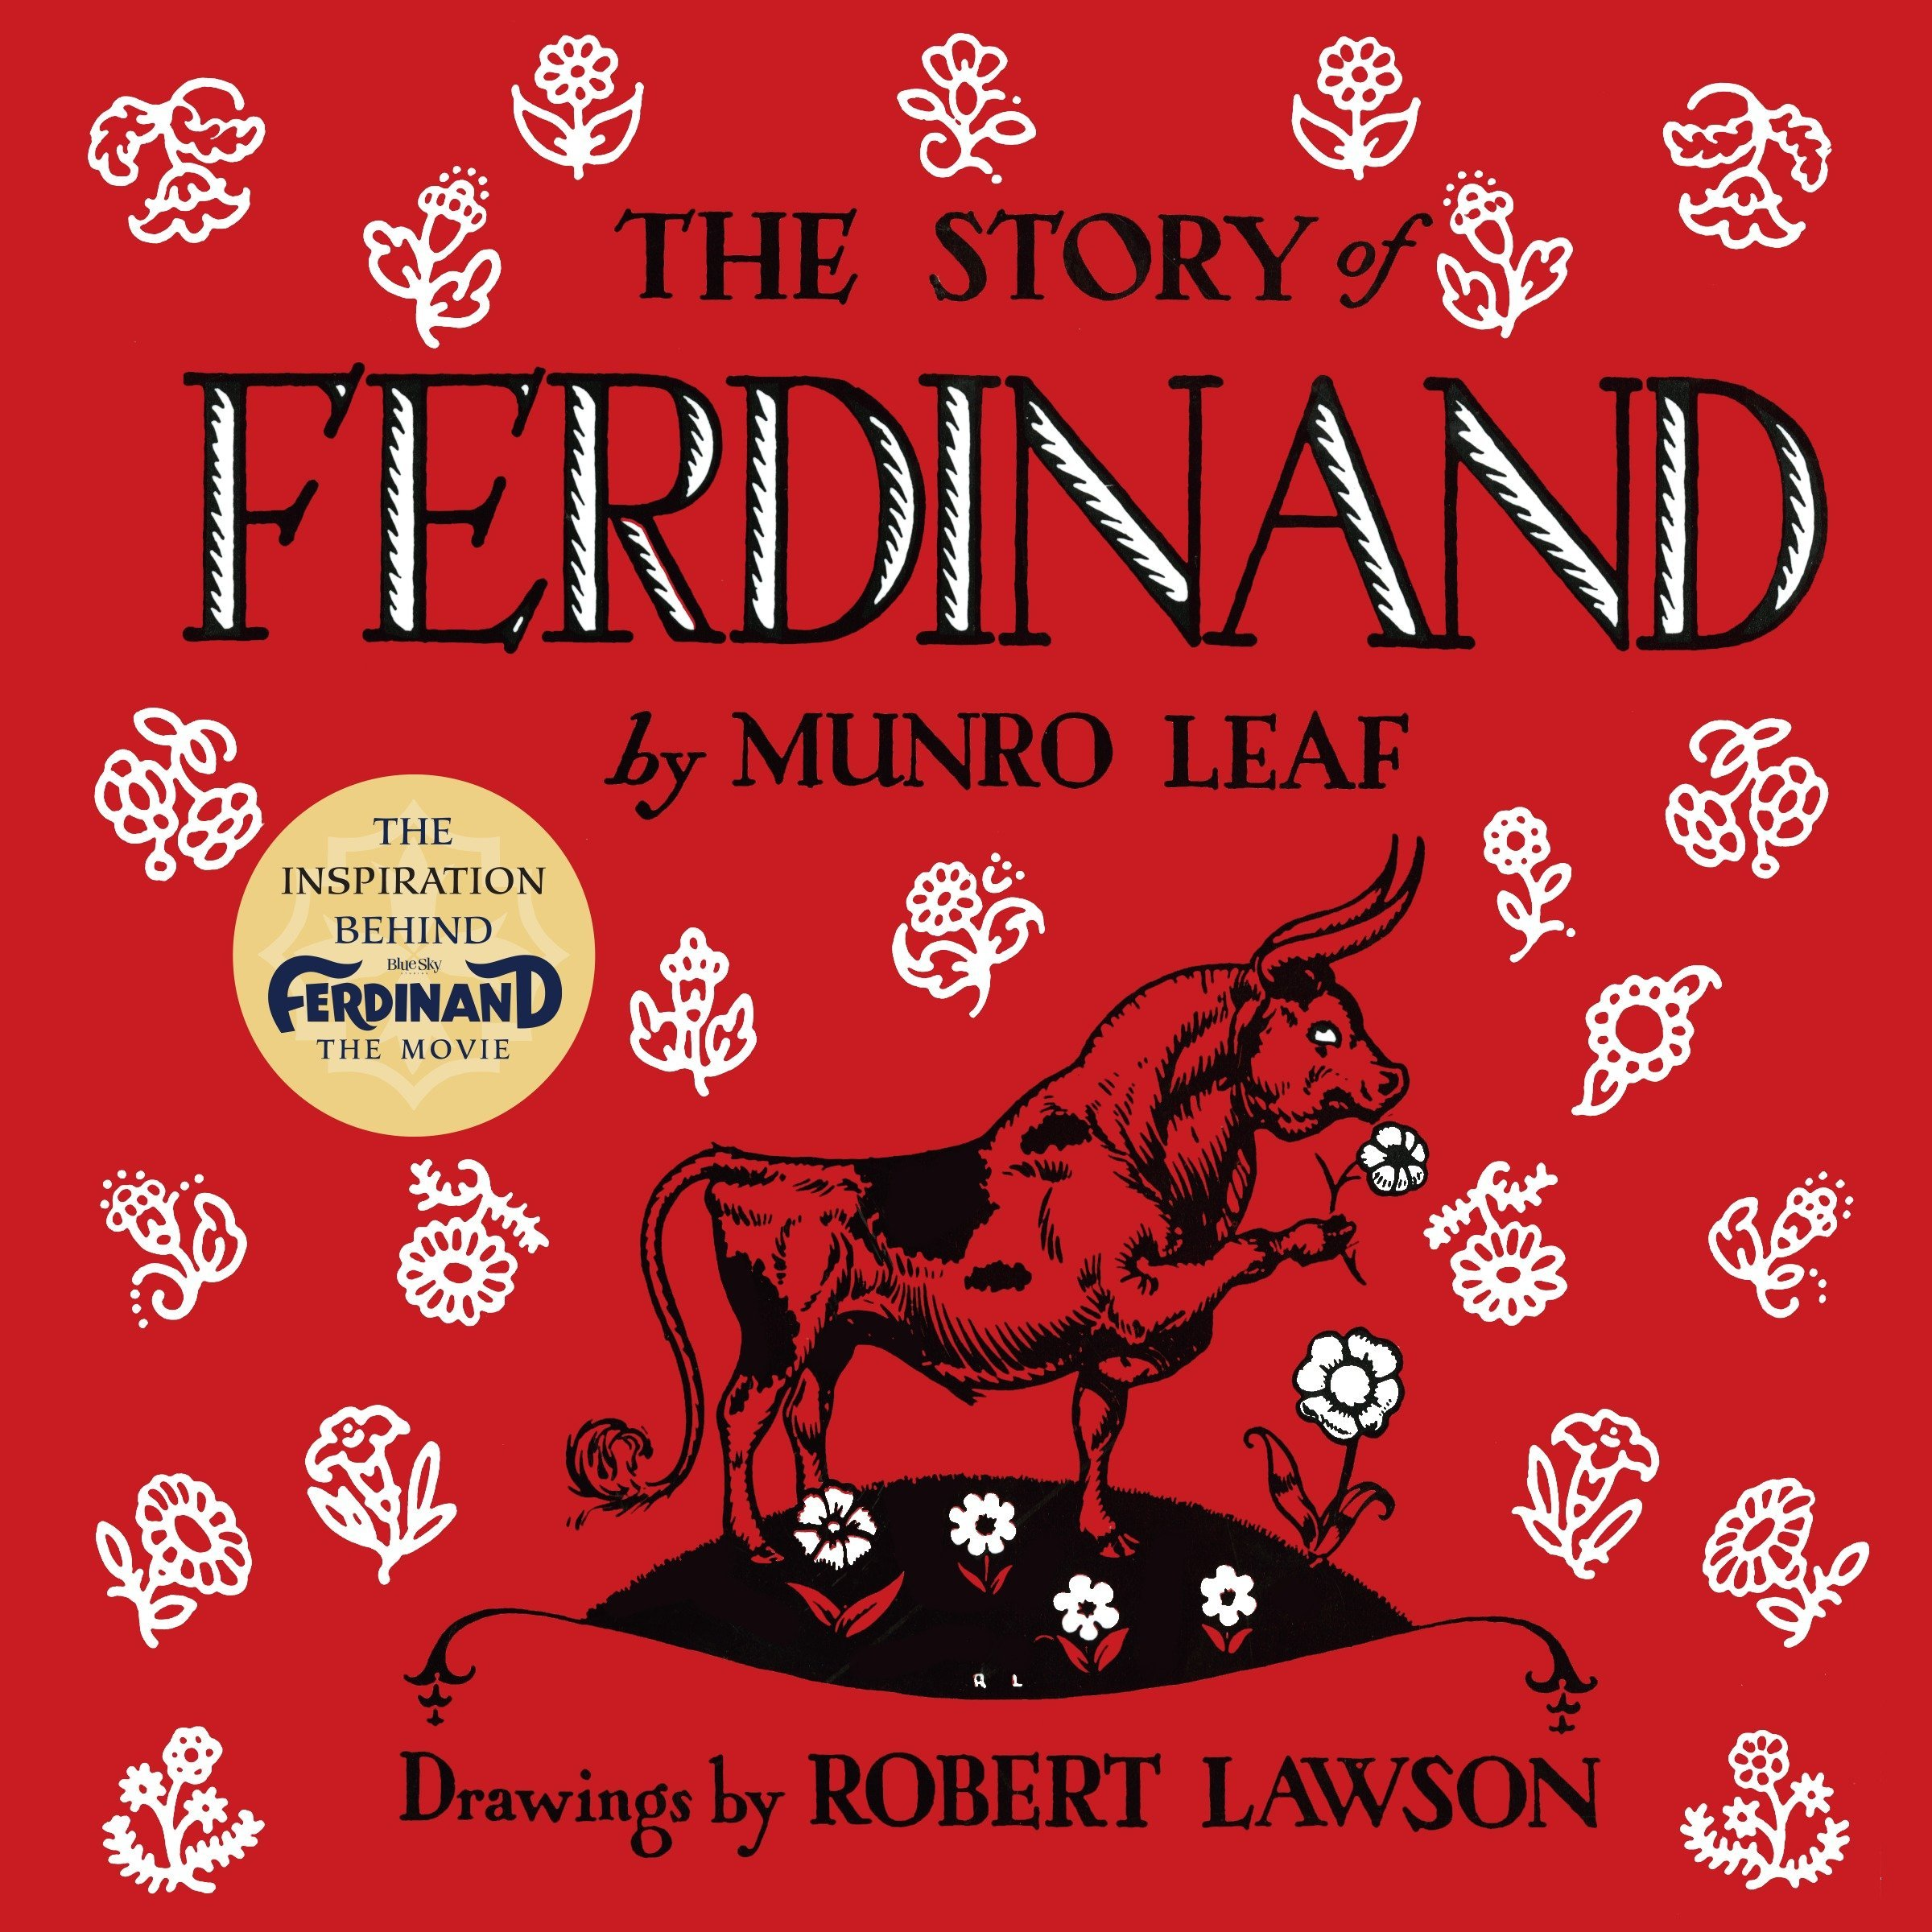 Picture Books that teach empathy to kids  - the story of ferdinand.jpg